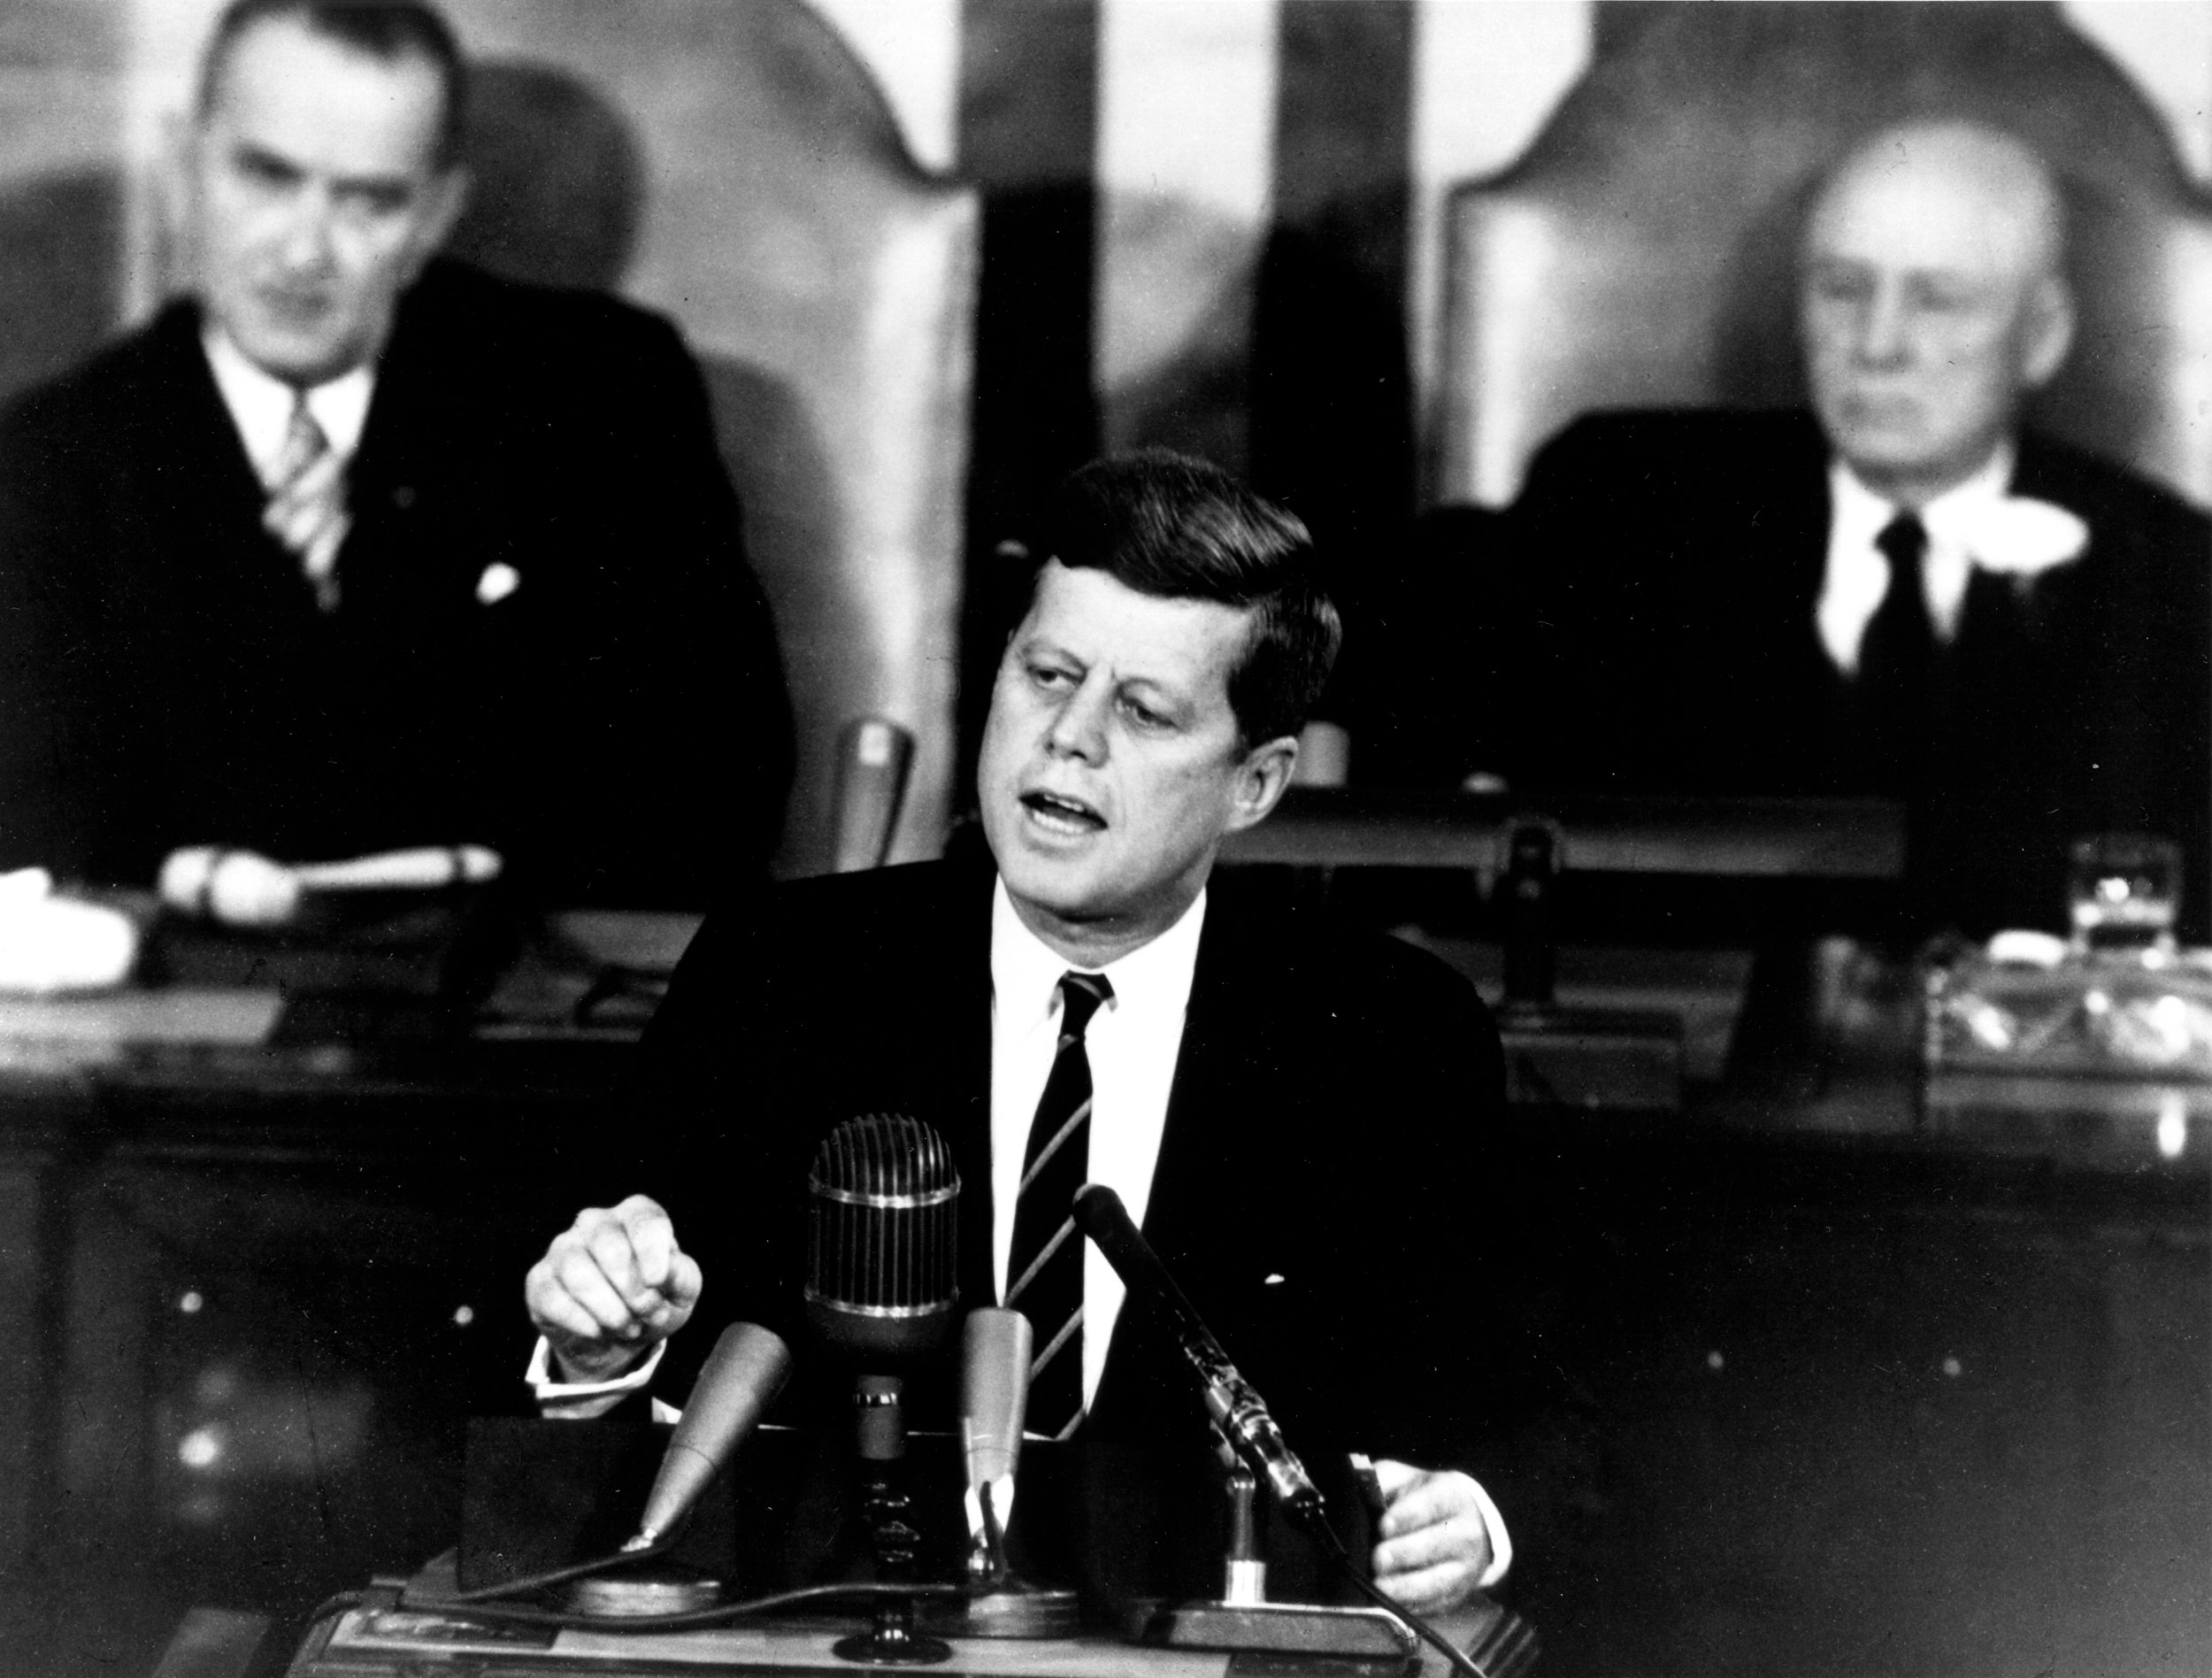 President Kennedy Addresses Congress May 25, 1961. Shown in the background are, (left) Vice President Lyndon Johnson, and (right) Speaker of the House Sam T. Rayburn. Image #:  70-H-1075 .